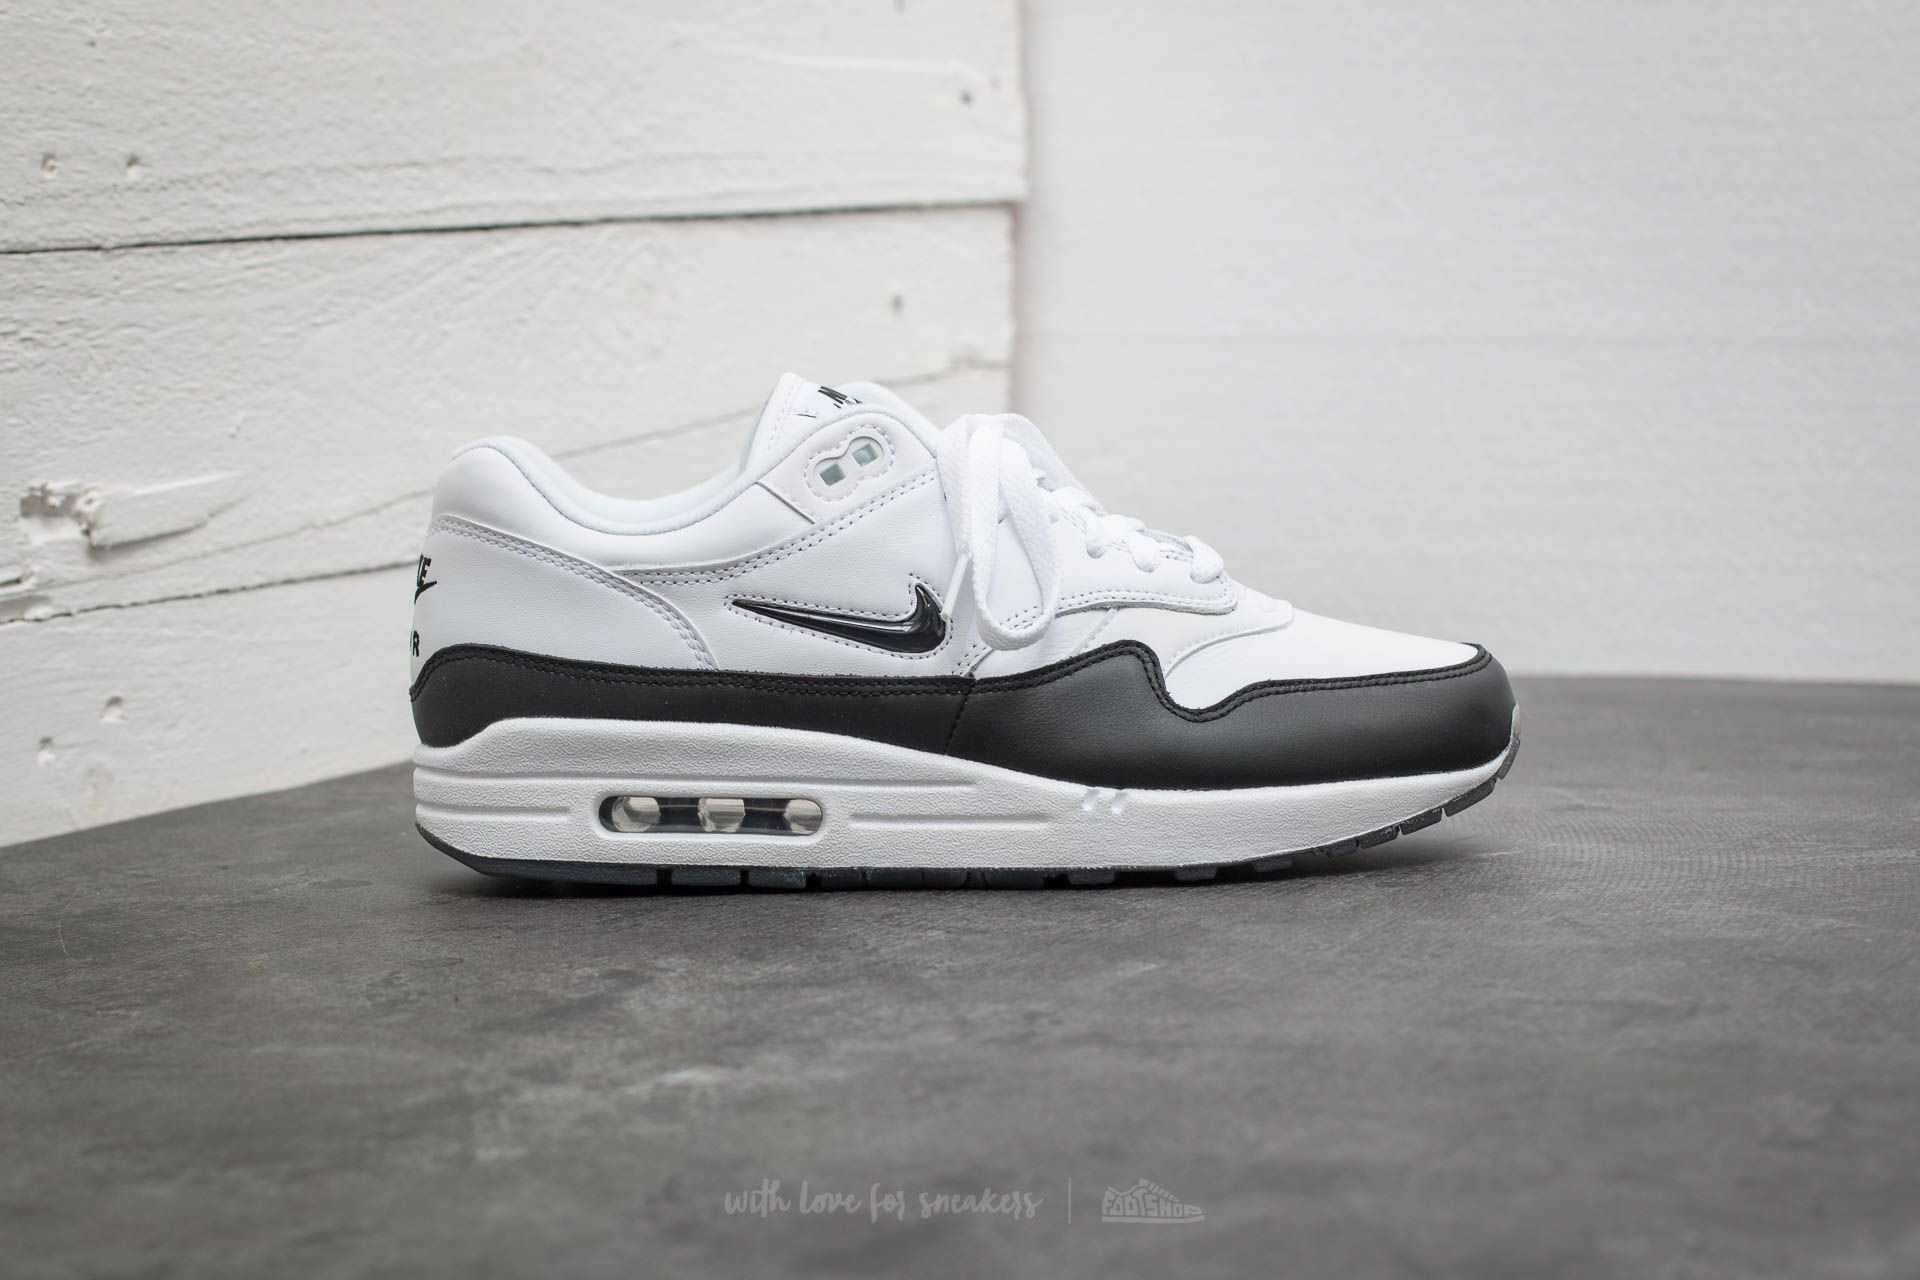 nike air max 1 jewel green nz|Free delivery!